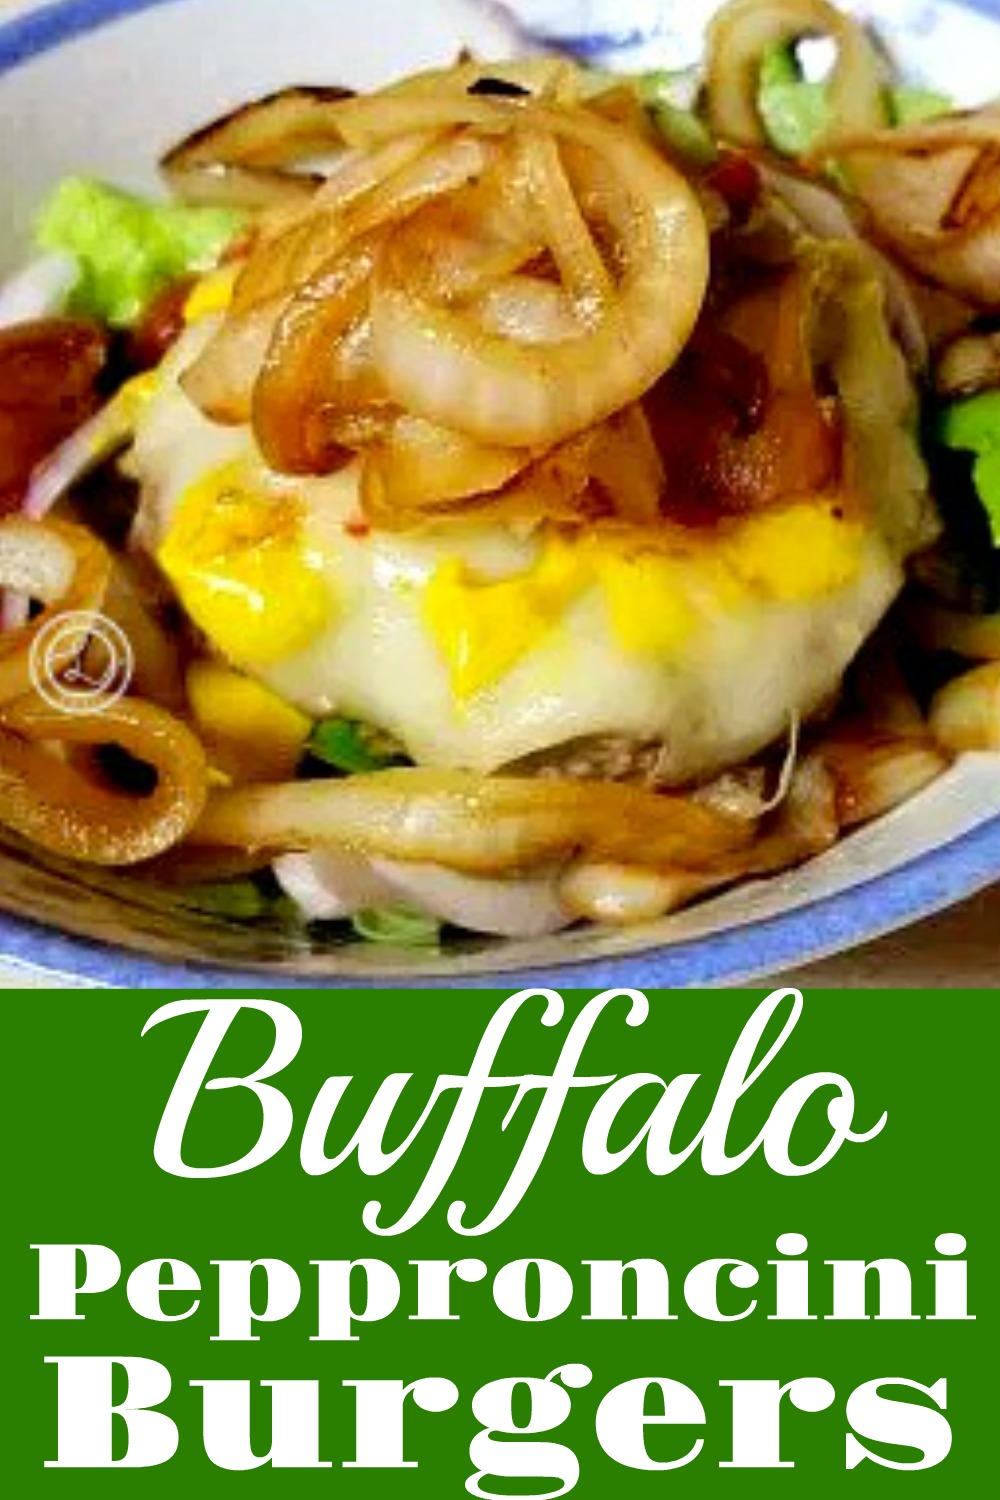 Burger in a bowl with caramelized onions, lettuce, melted cheese and other toppings.